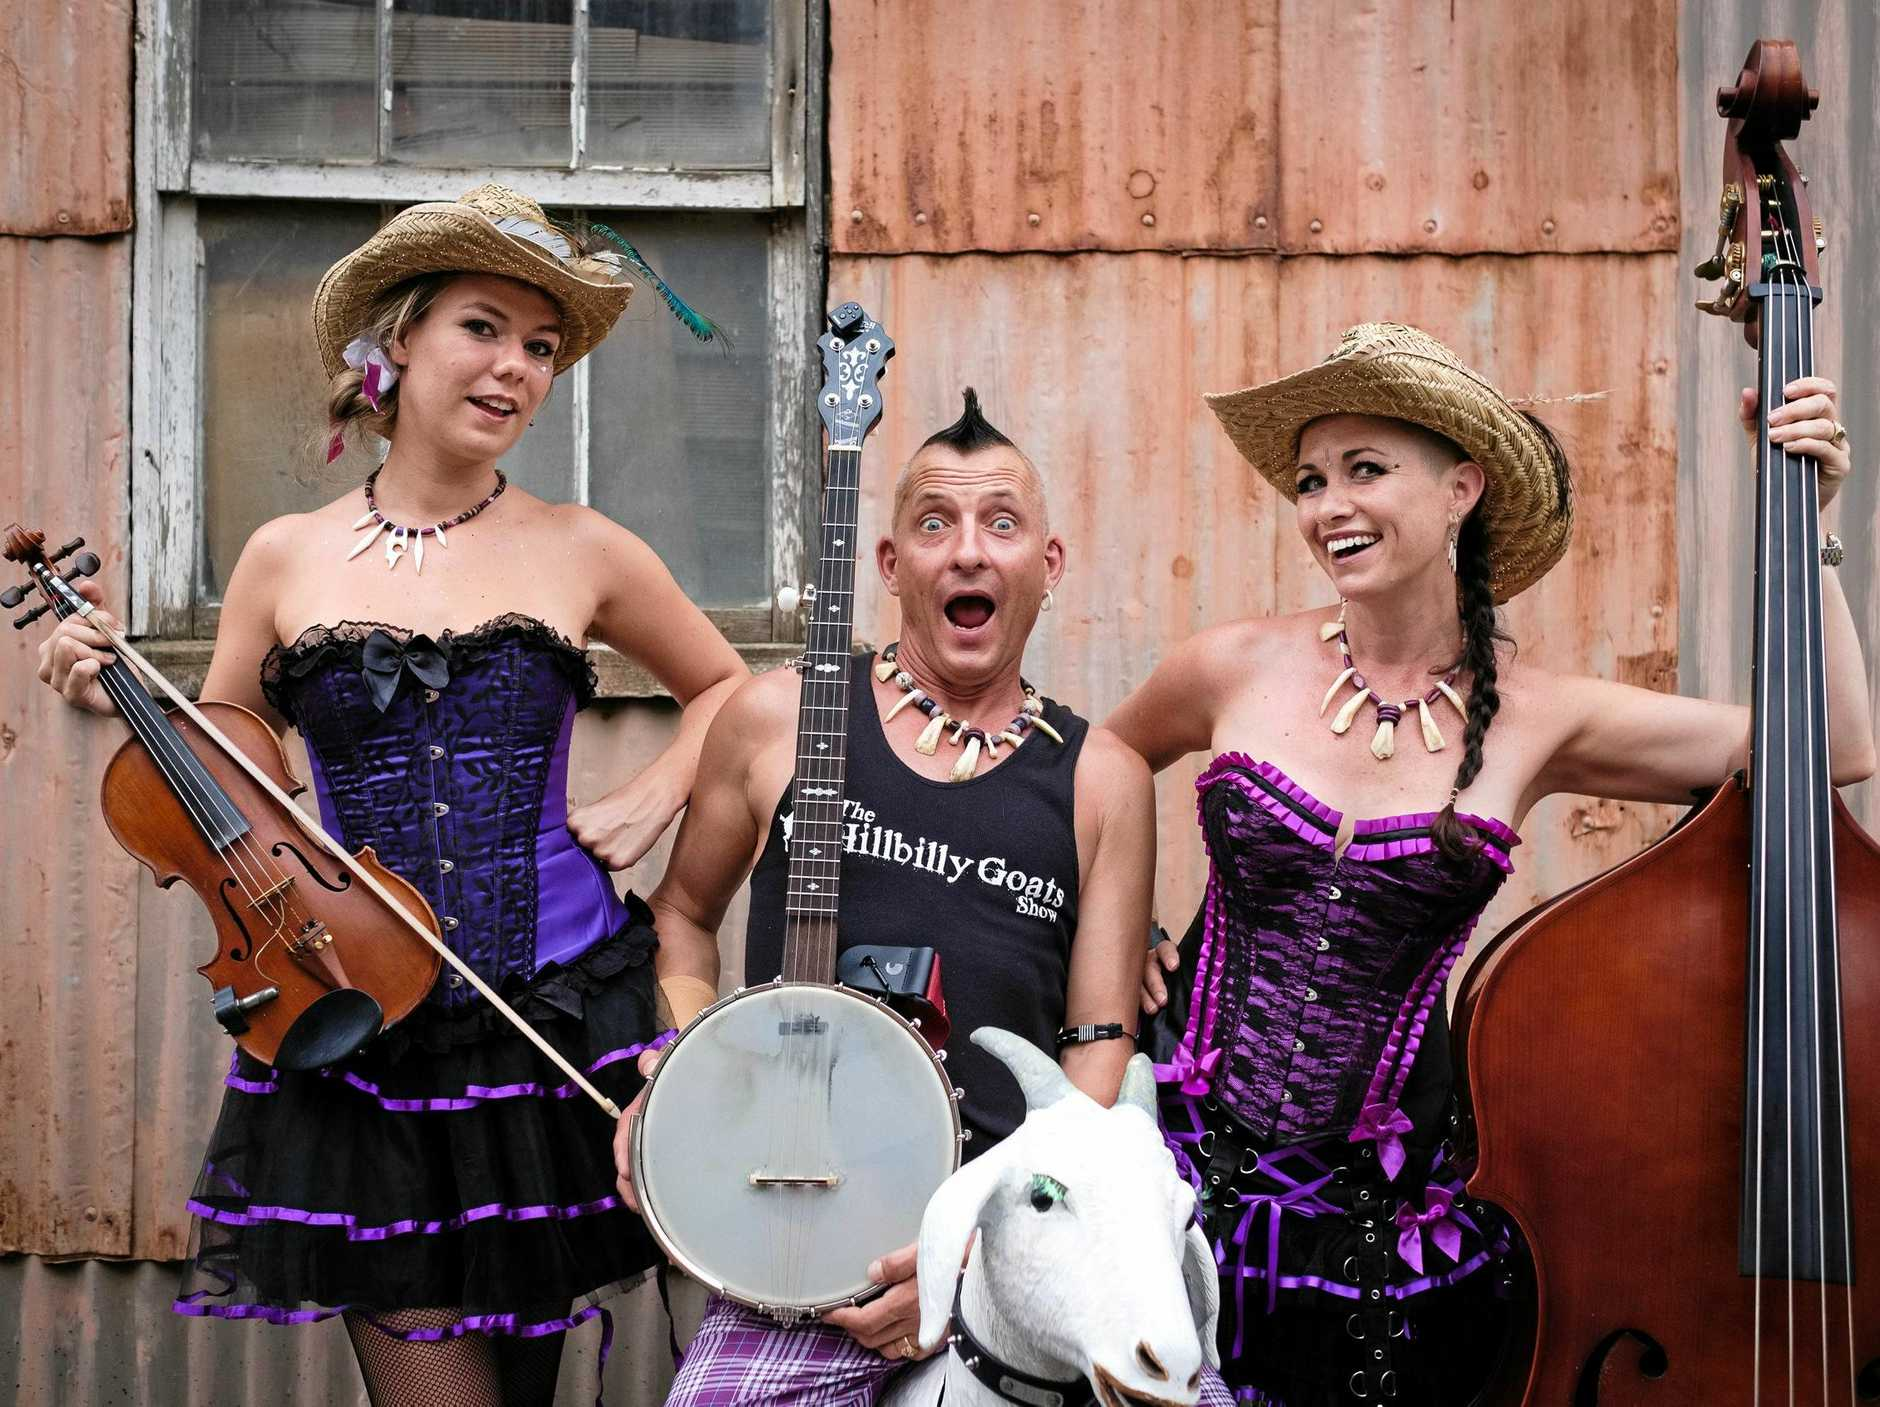 The Hillbilly Goats are performing at Sound Feast this month in Noosa.